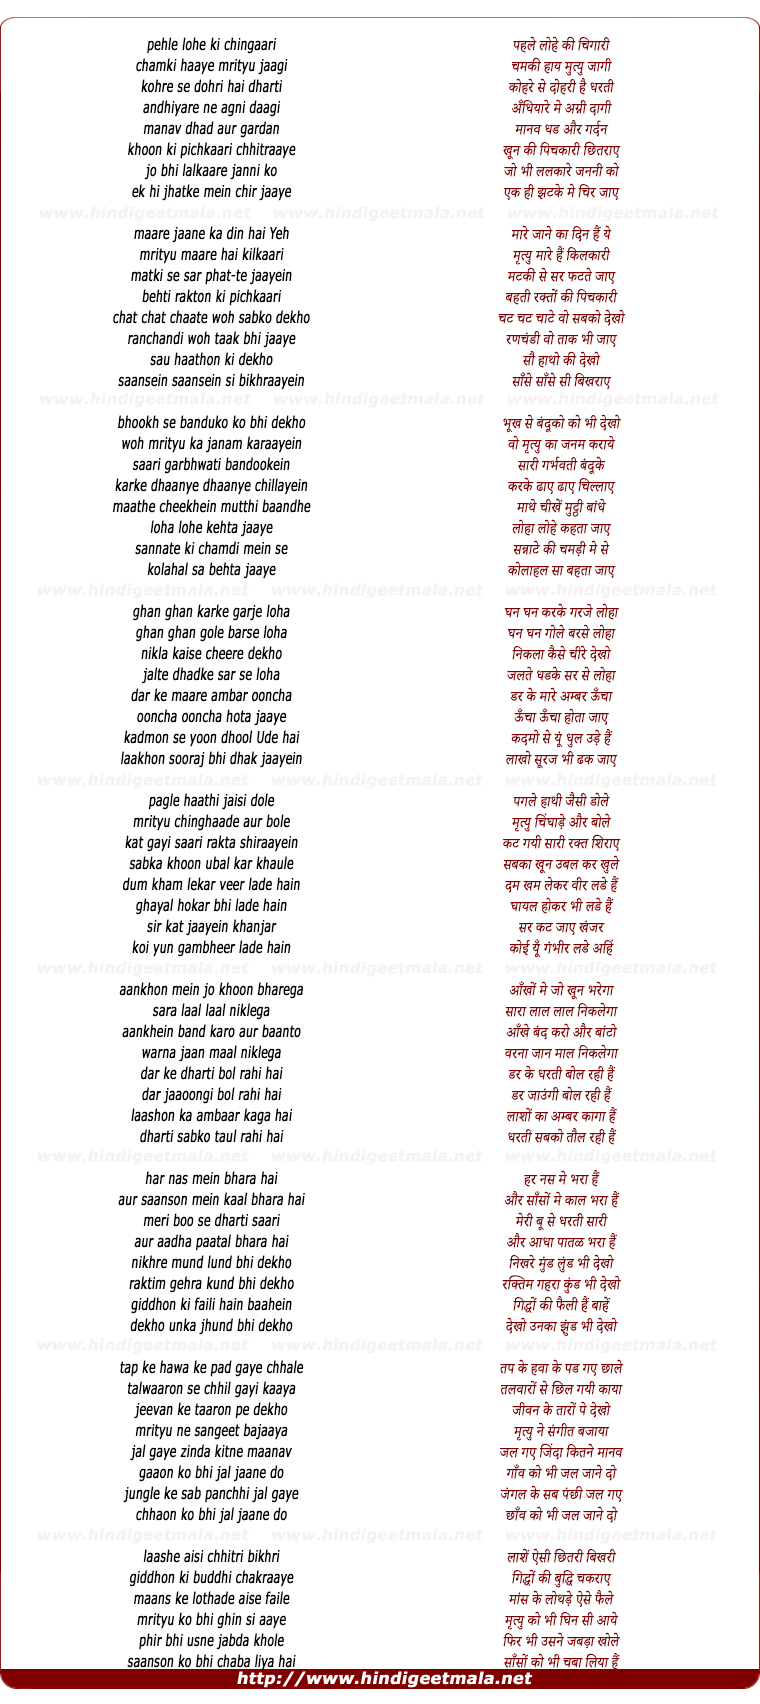 lyrics of song Pehle Lohe Ki Chingaari